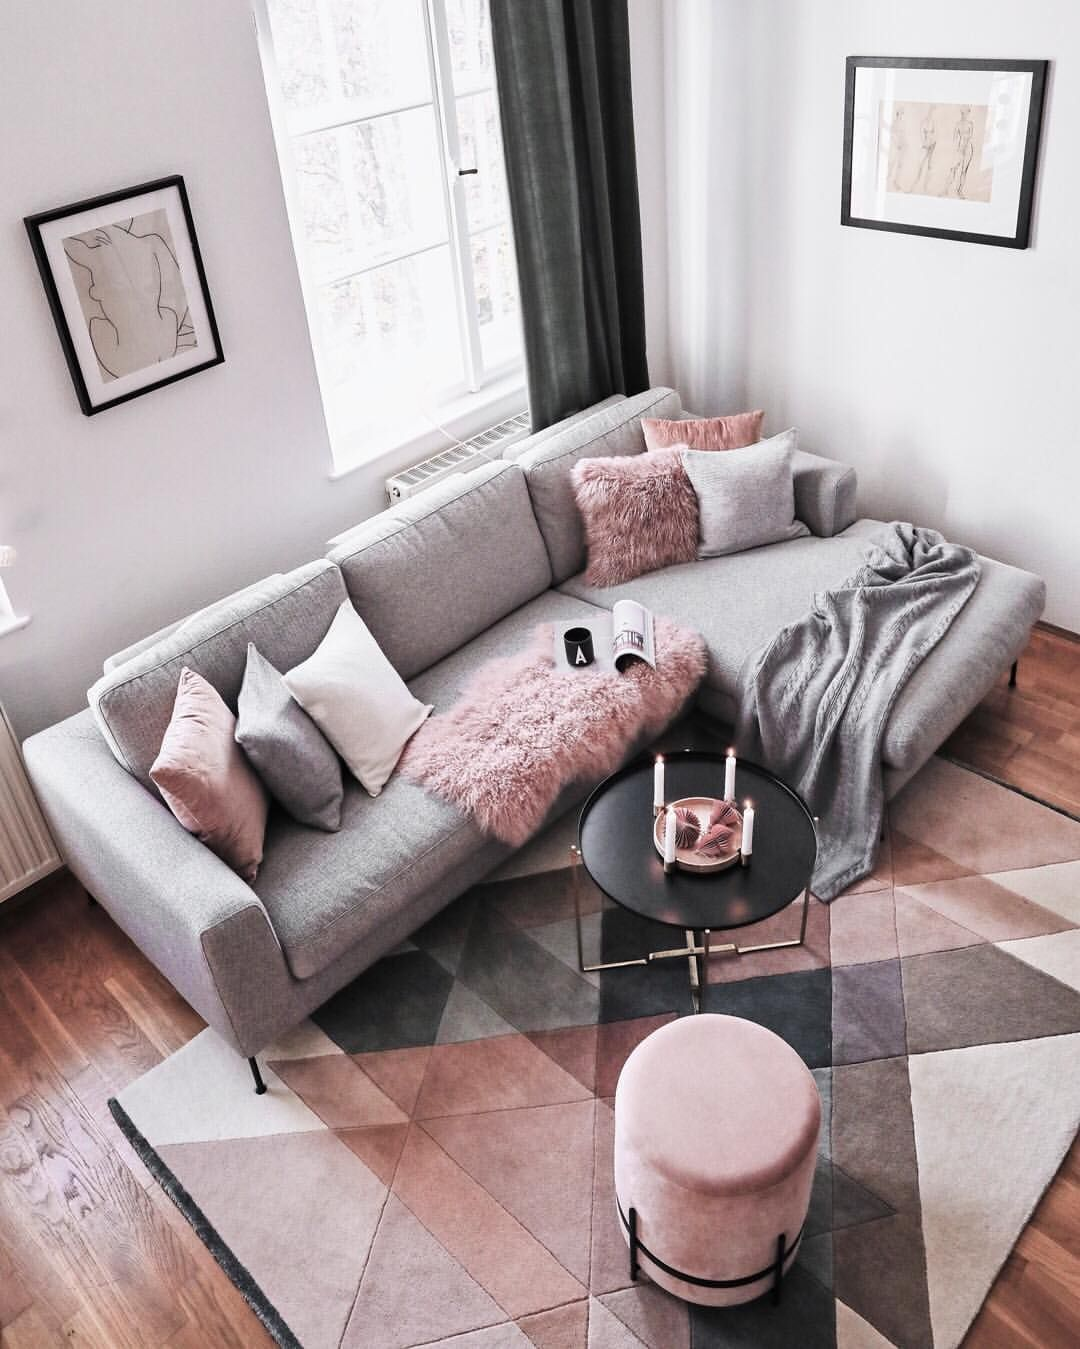 14 Small Apartment Living Rooms With The Best Space Saving Ideas Futurian Apartment Living Room Living Room Decor Apartment Farm House Living Room #space #saving #living #room